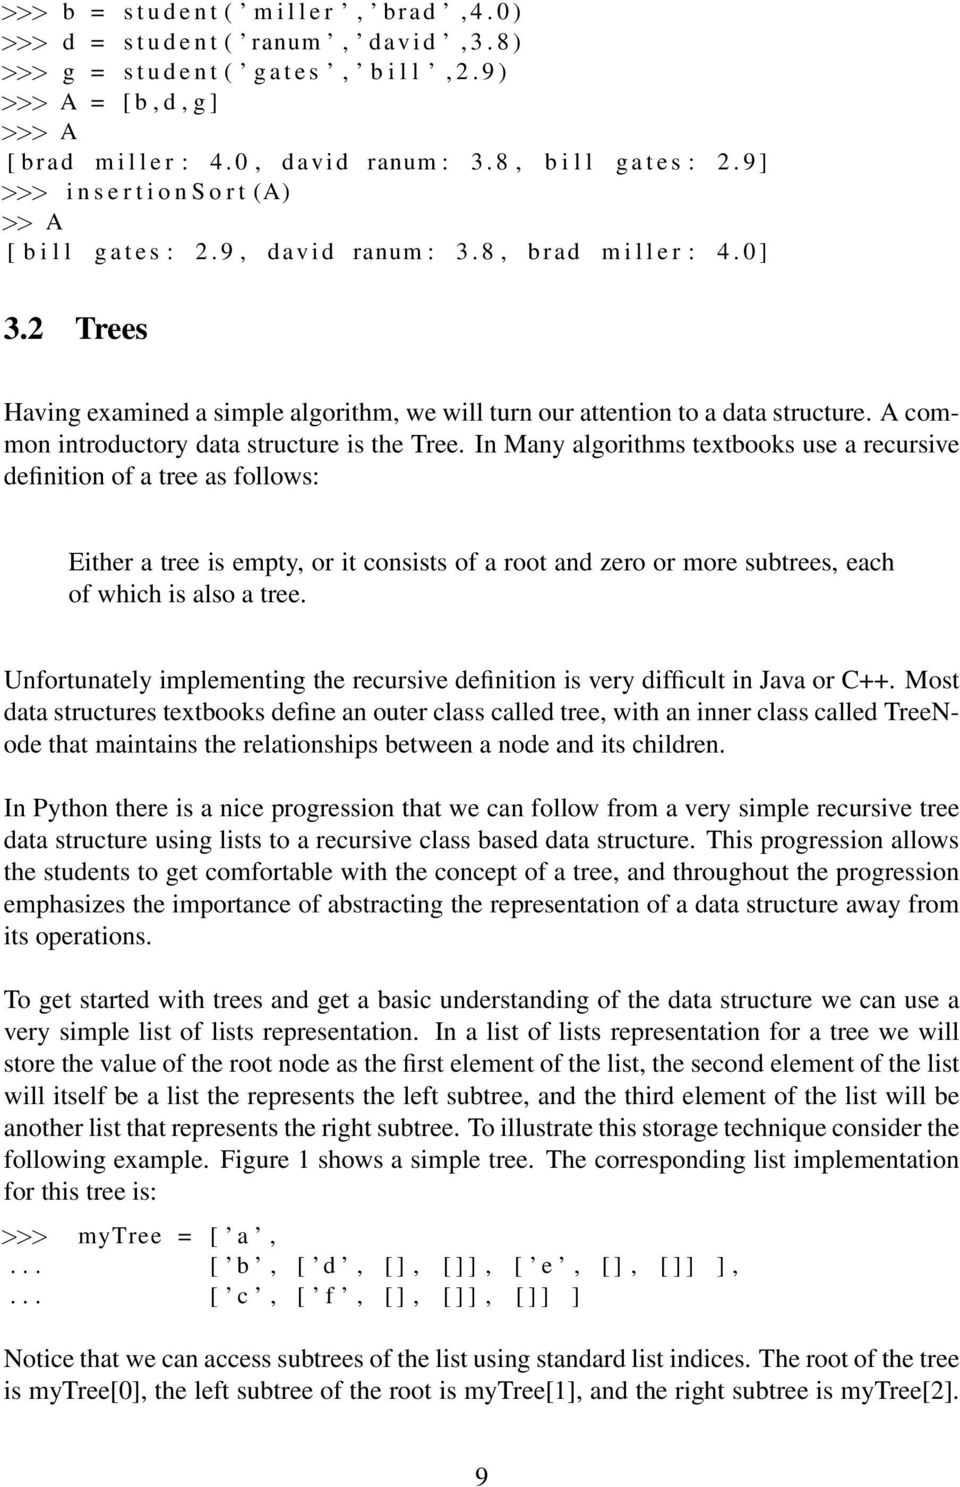 2 Trees Having examined a simple algorithm, we will turn our attention to a data structure. A common introductory data structure is the Tree.